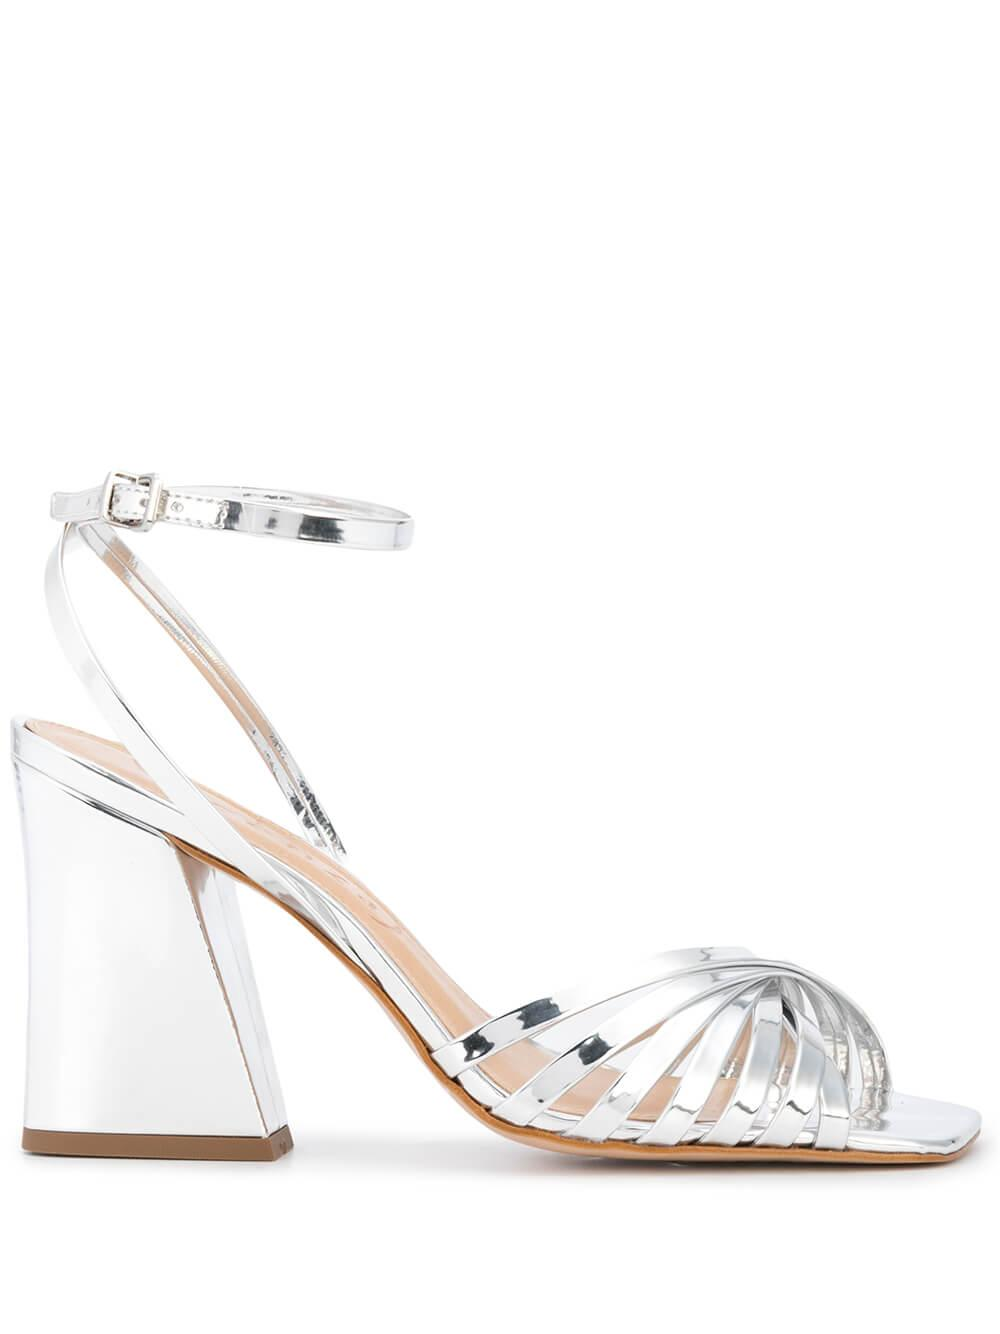 Metallic Strappy Block Heel Sandal